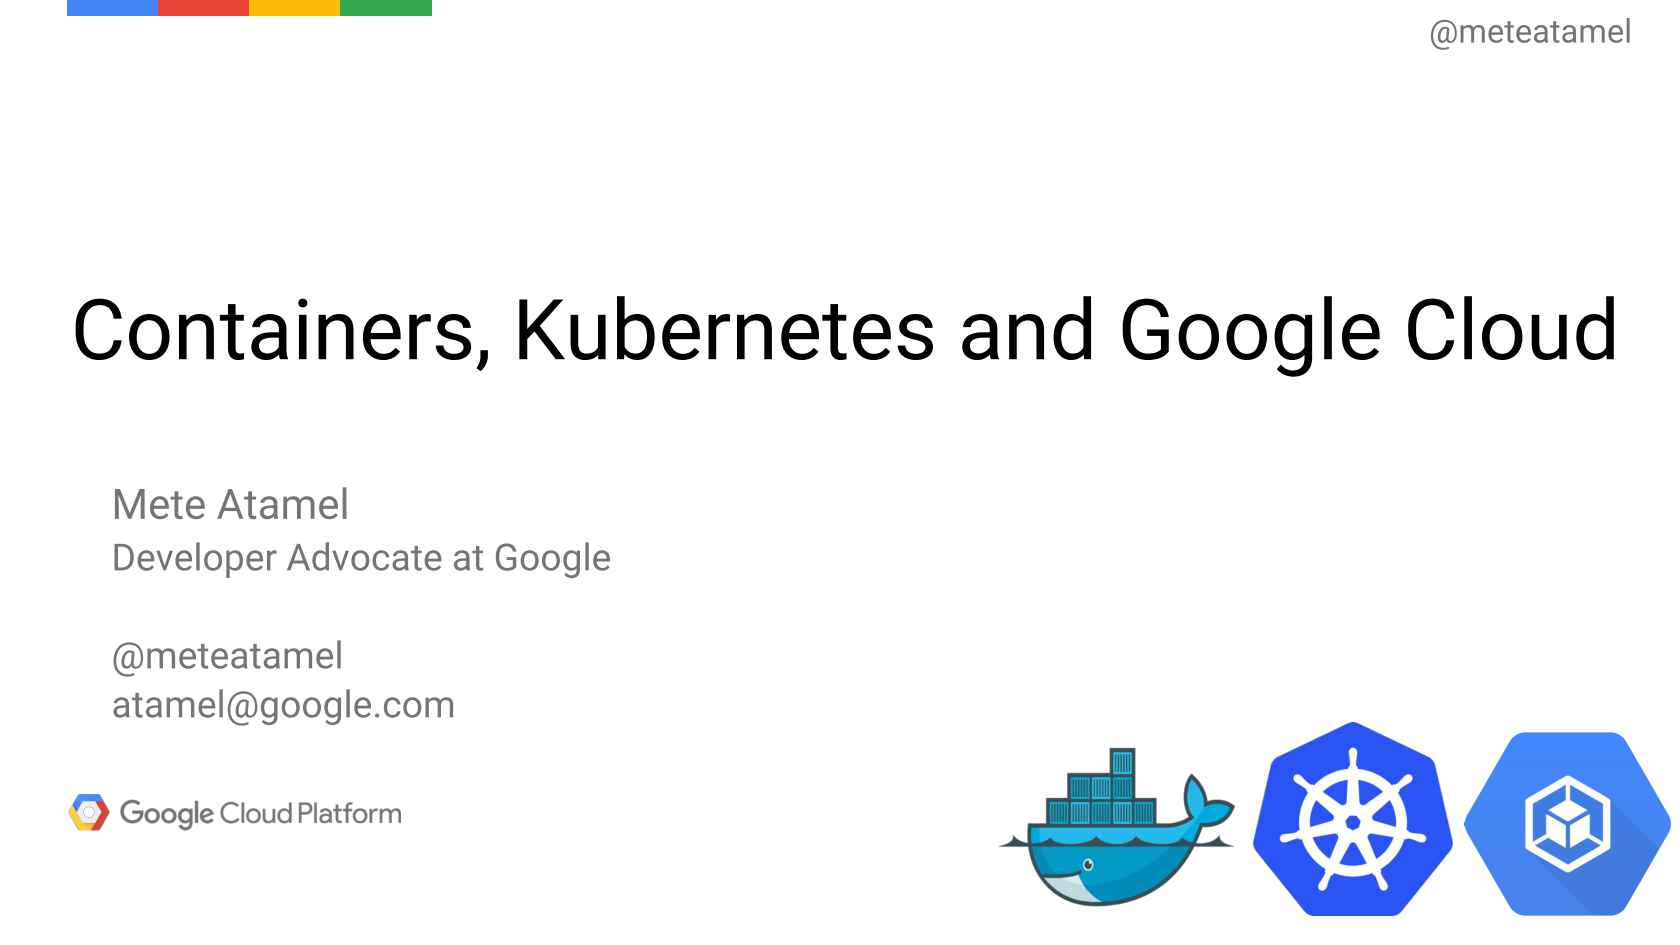 Containers, Kubernetes and Google Cloud